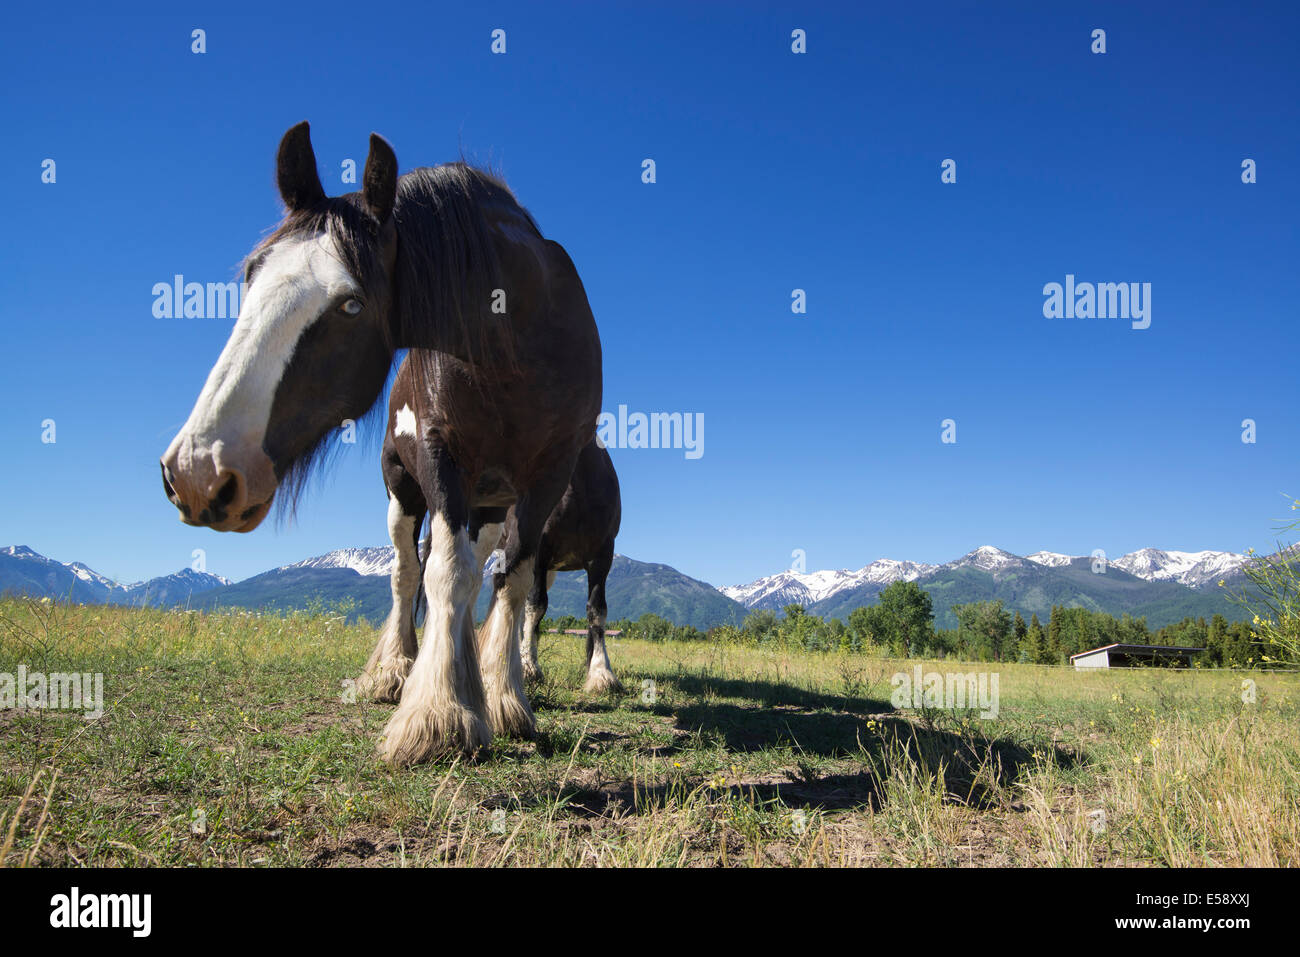 Black Clydesdale horse, Wallowa Valley, Oregon. - Stock Image